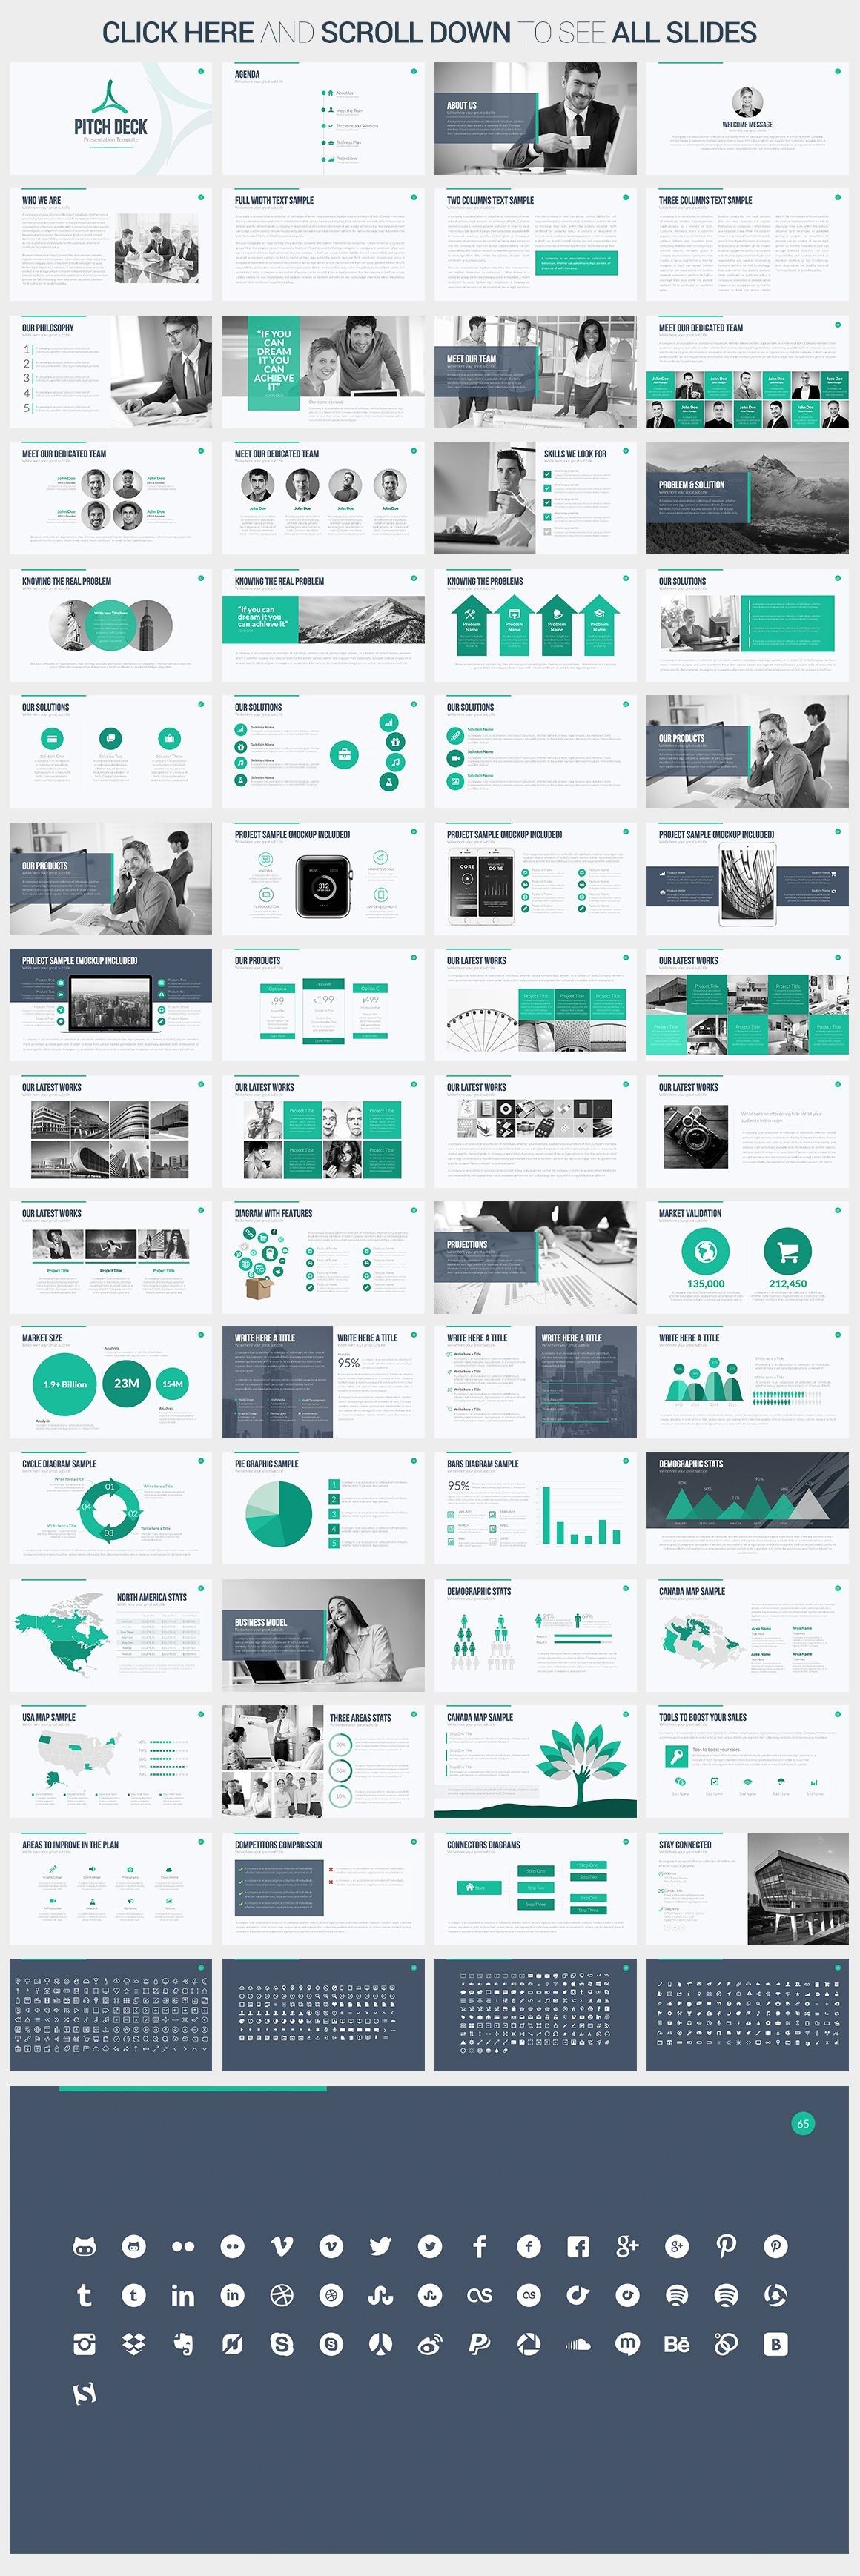 Pitch Deck Google Slides Template By Slidepro On